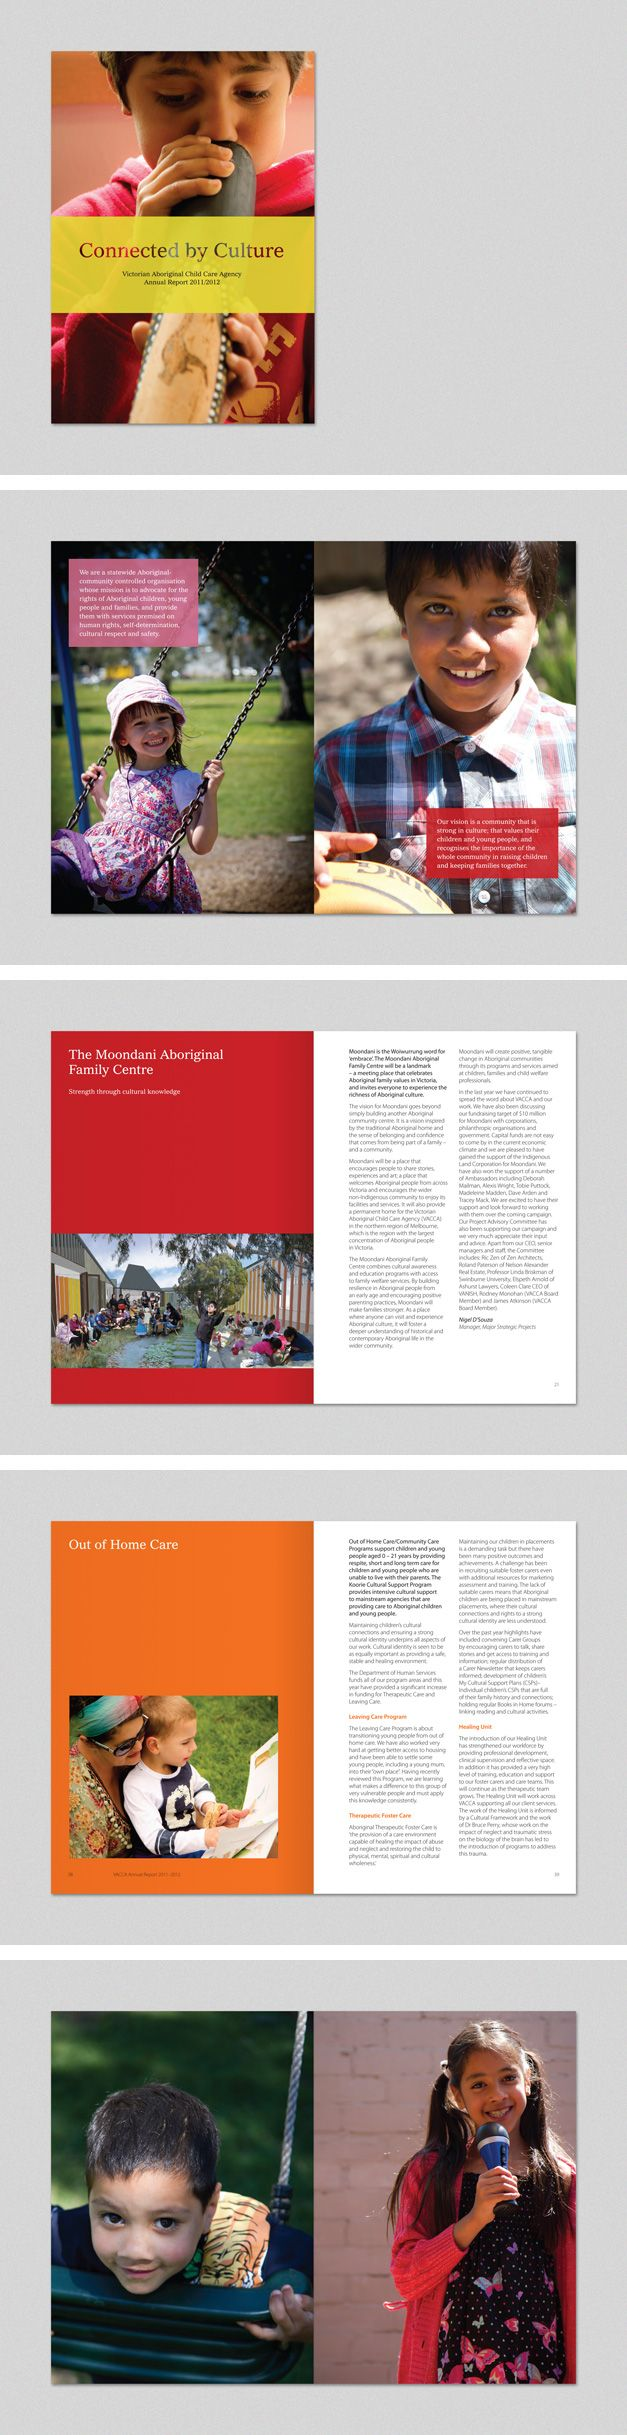 Victorian Aboriginal Child Care Agency Annual Report 2012 www.fenton.com.au #communication #PR #branding #graphicdesign #annualreport